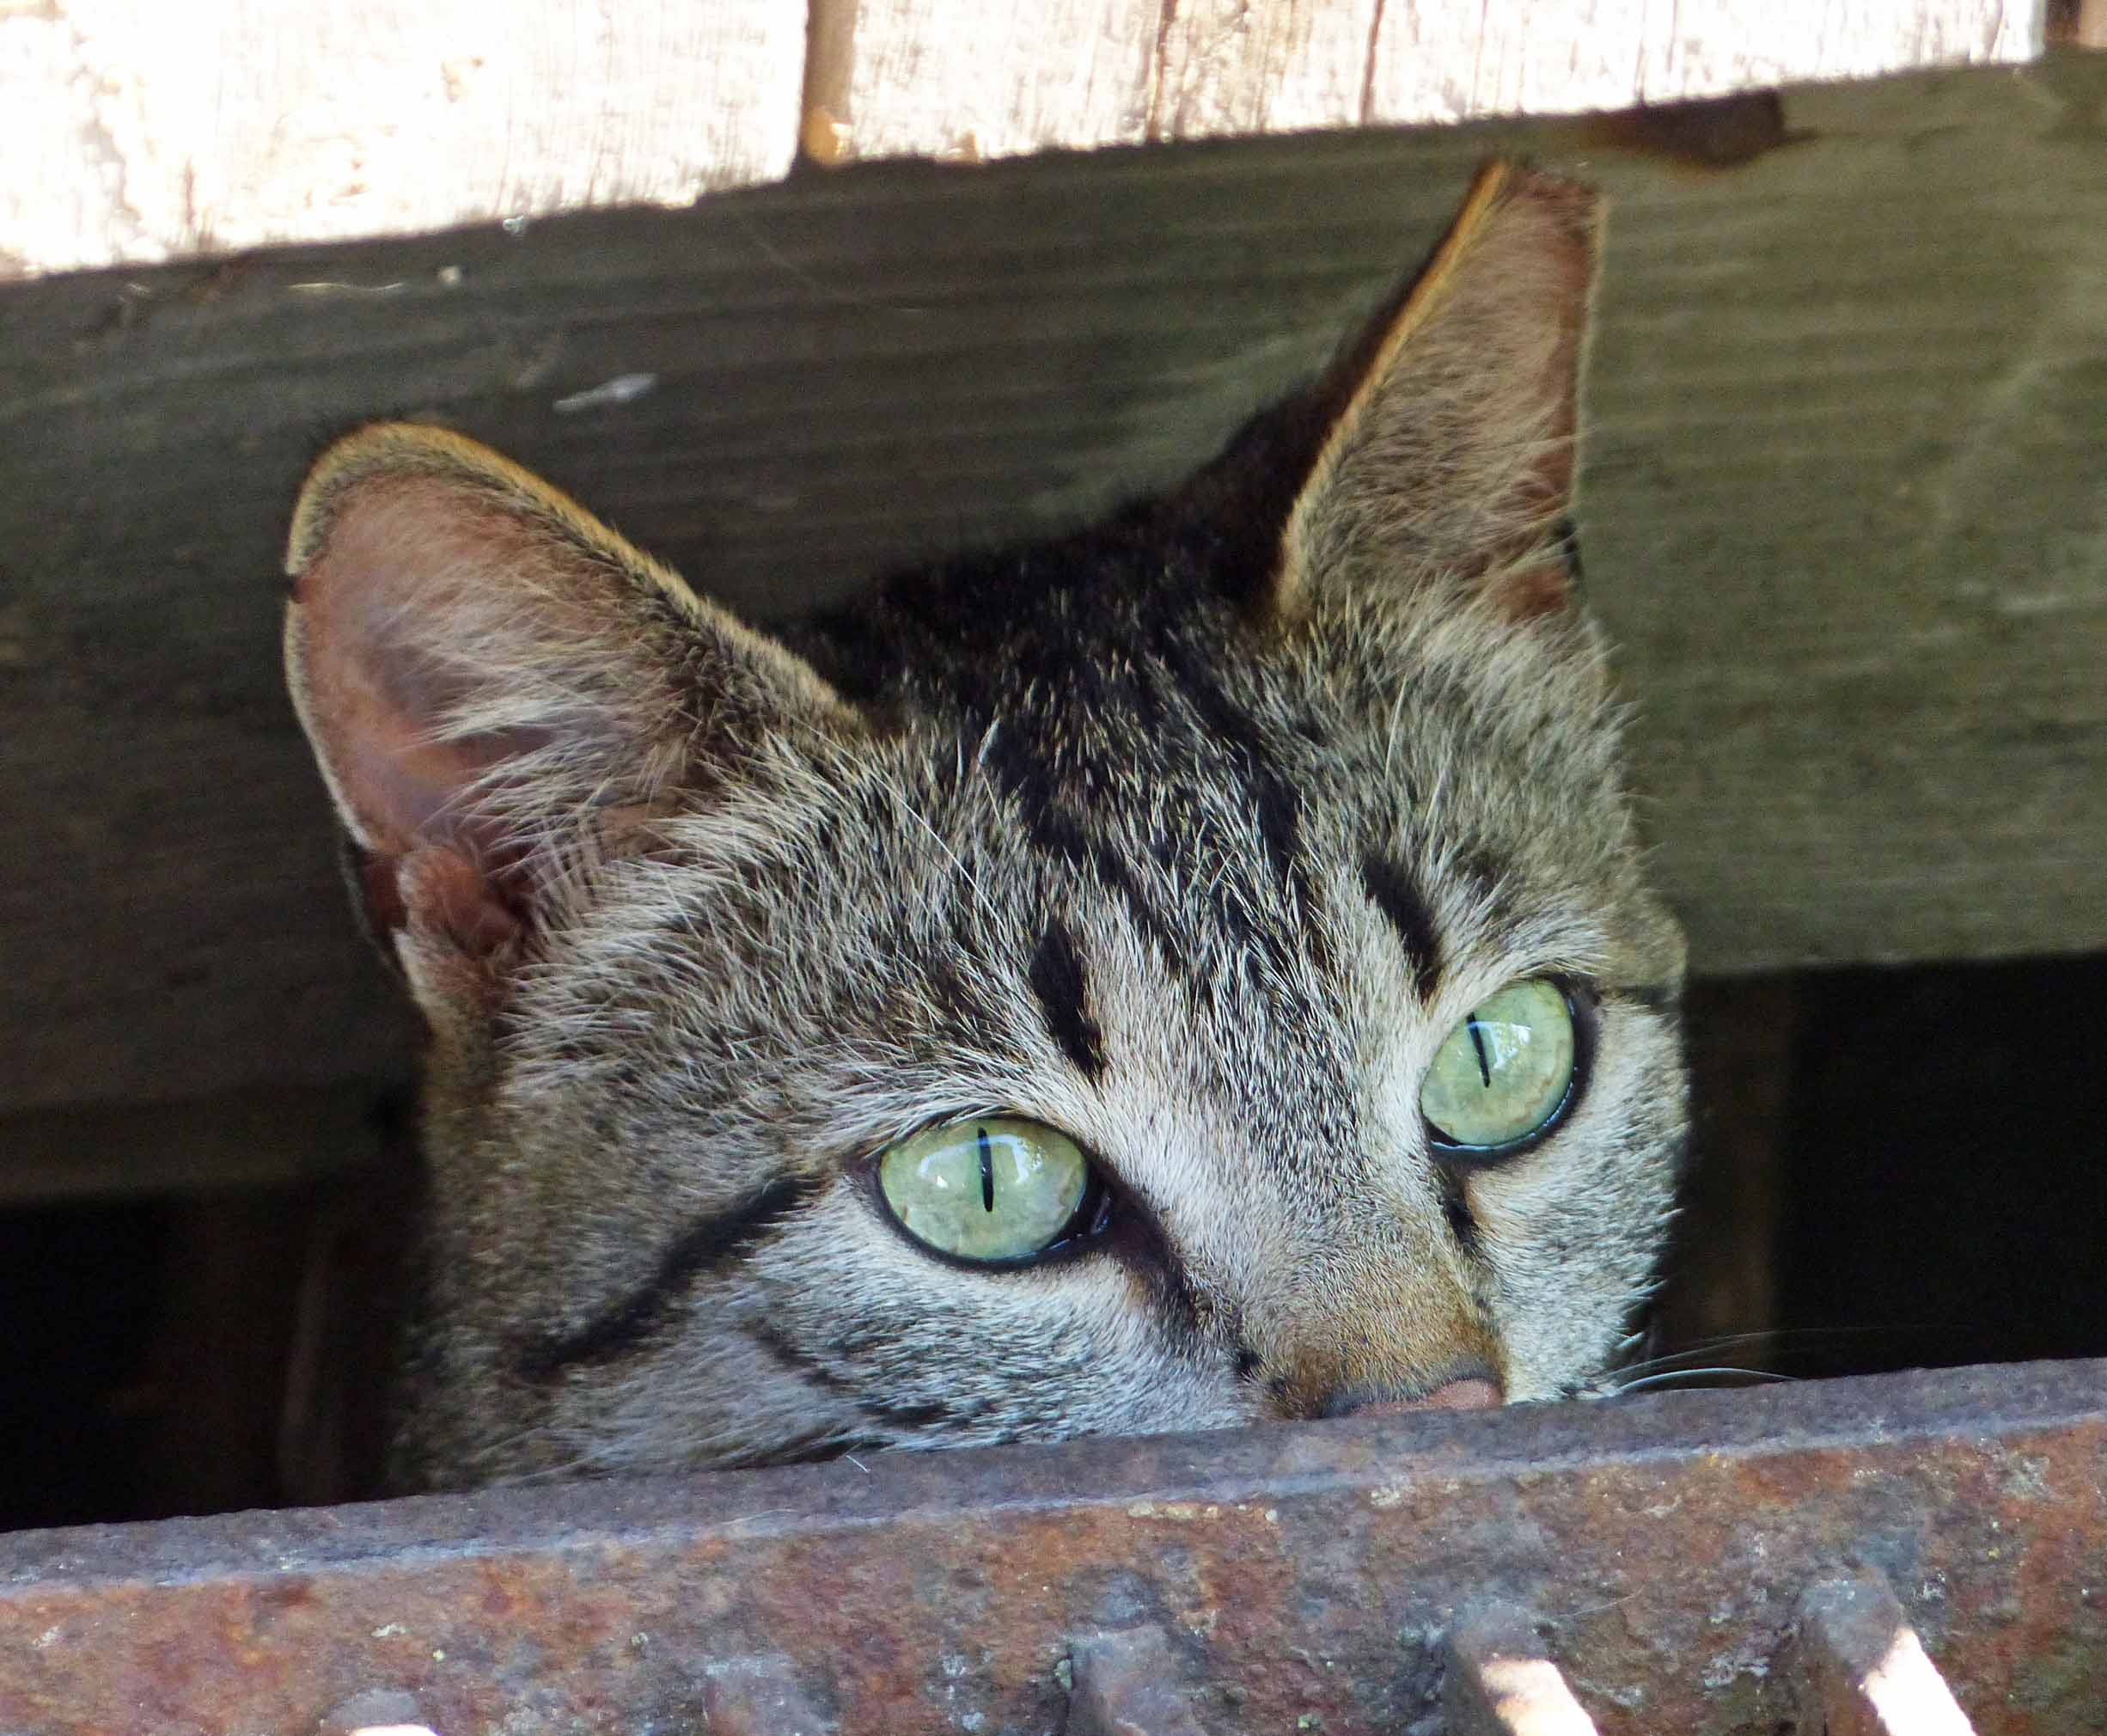 Tabby cat peering out of a hole in a fence